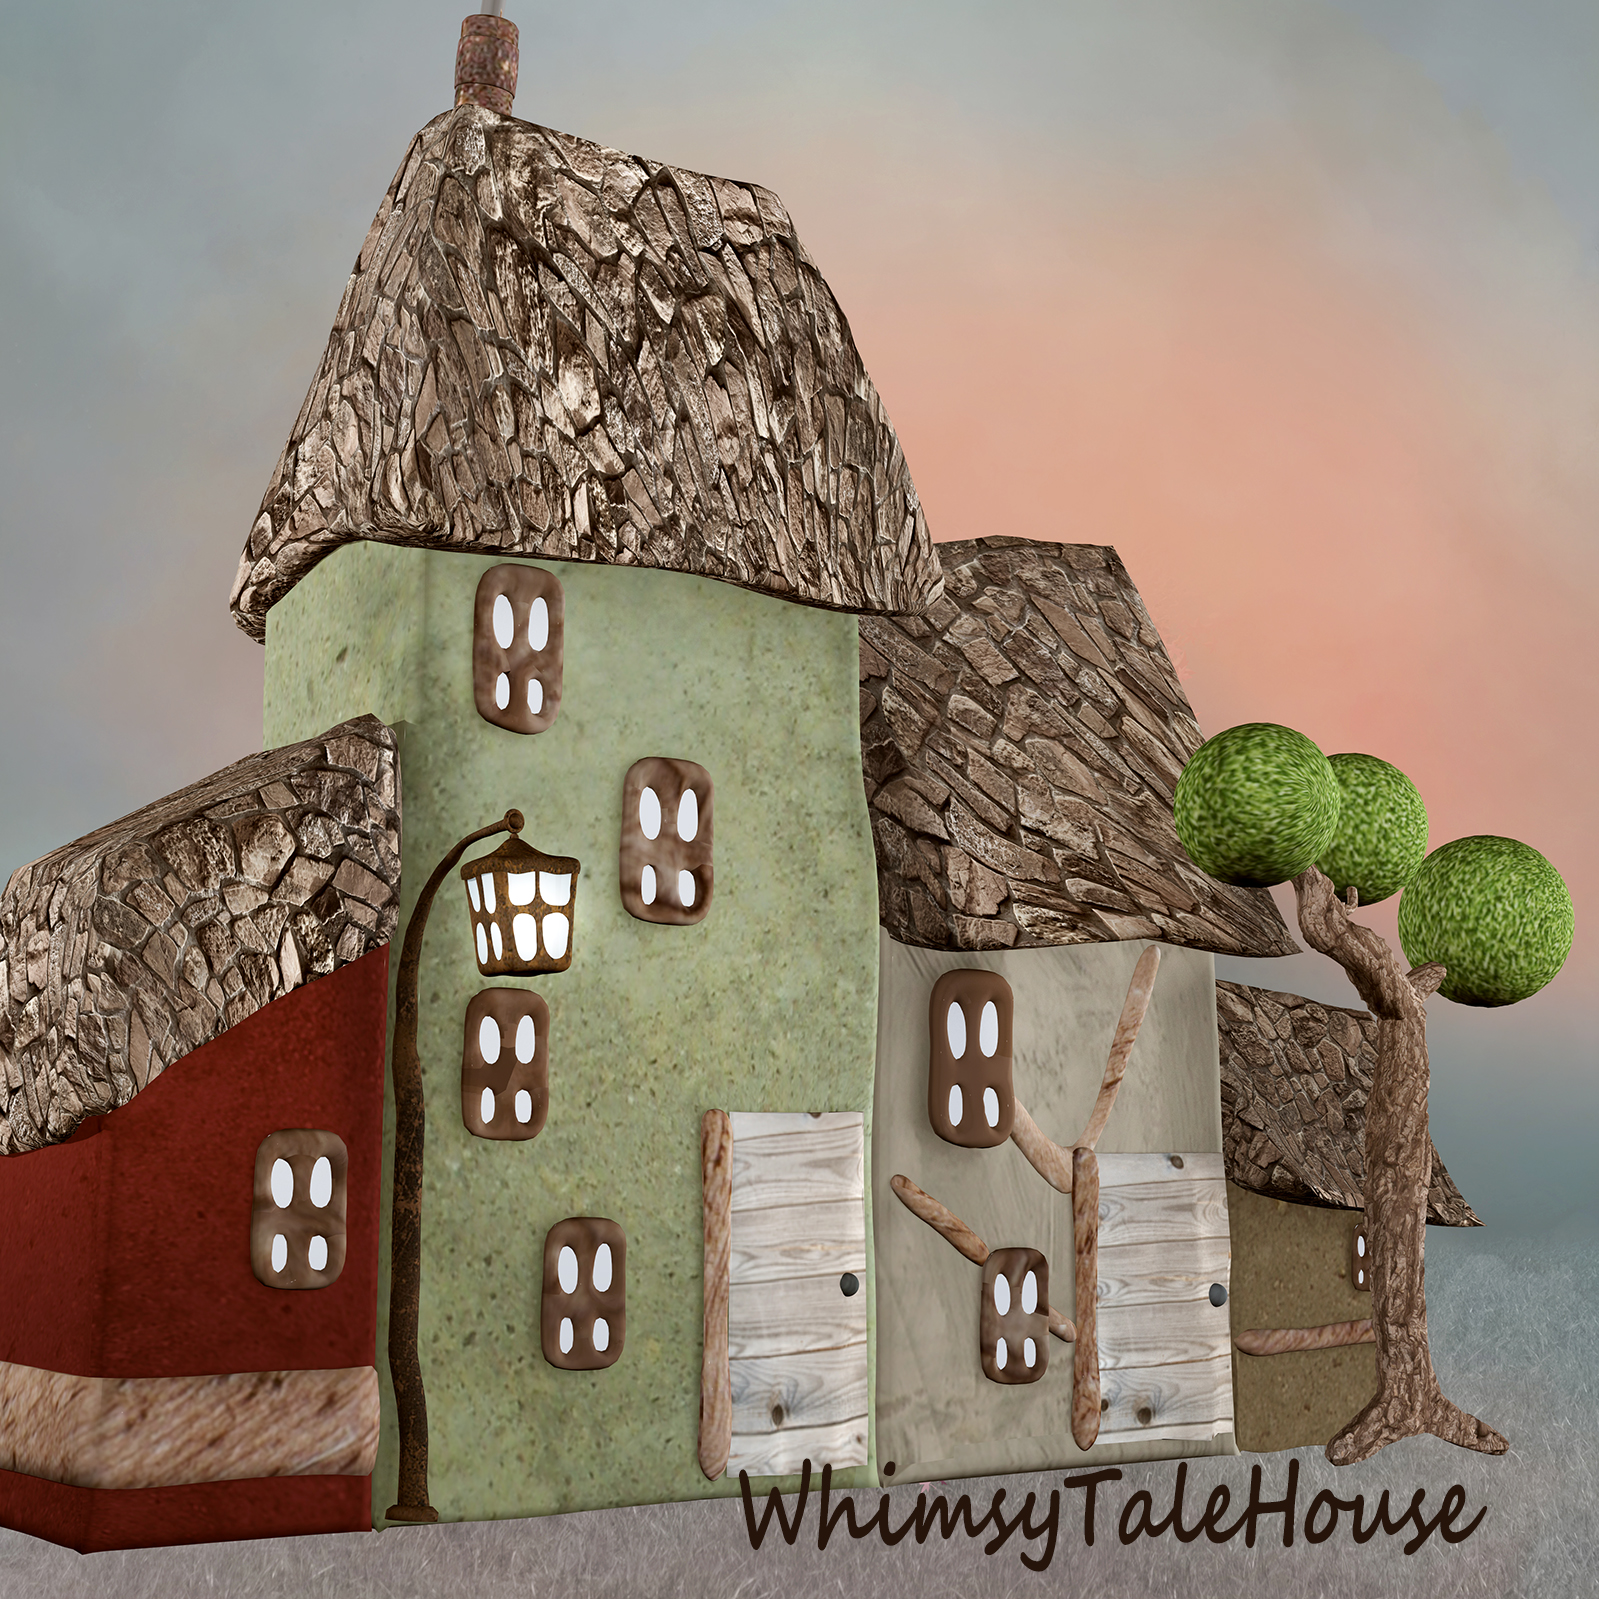 Whimsy Tale House